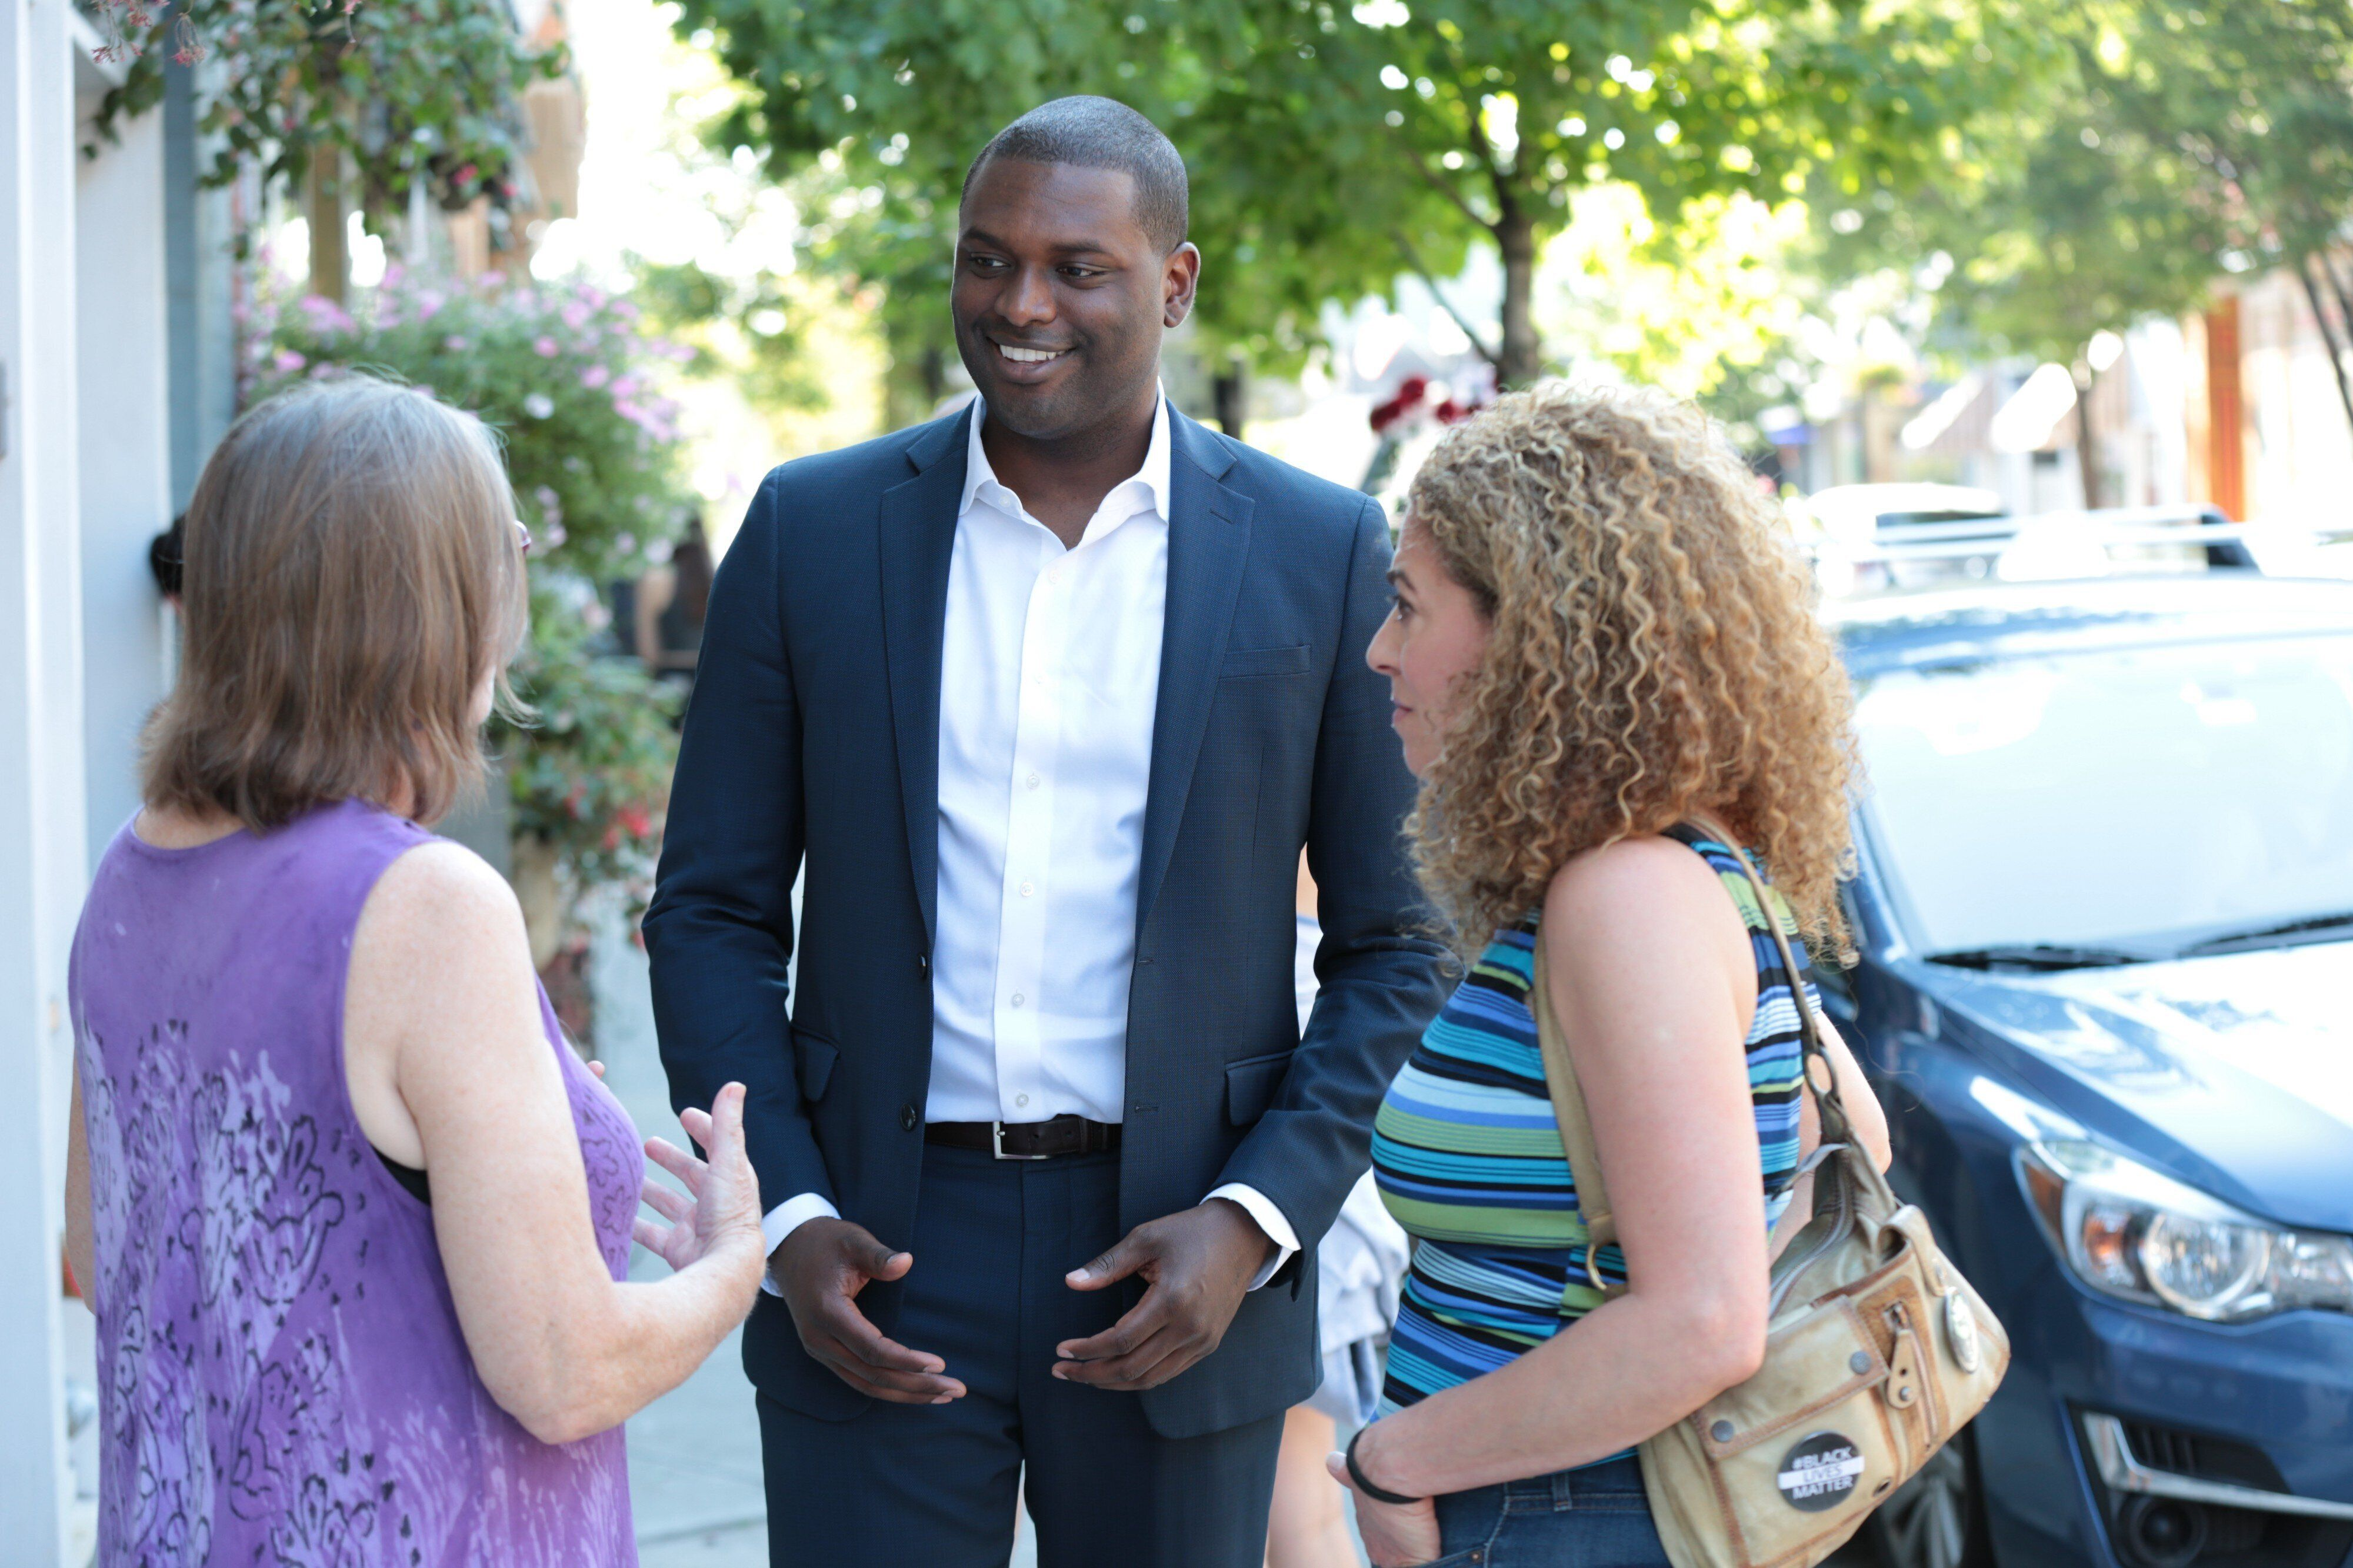 If elected, attorney Mondaire Jones would be the first openly gay Black man in Congress. A crowded field could redound to his